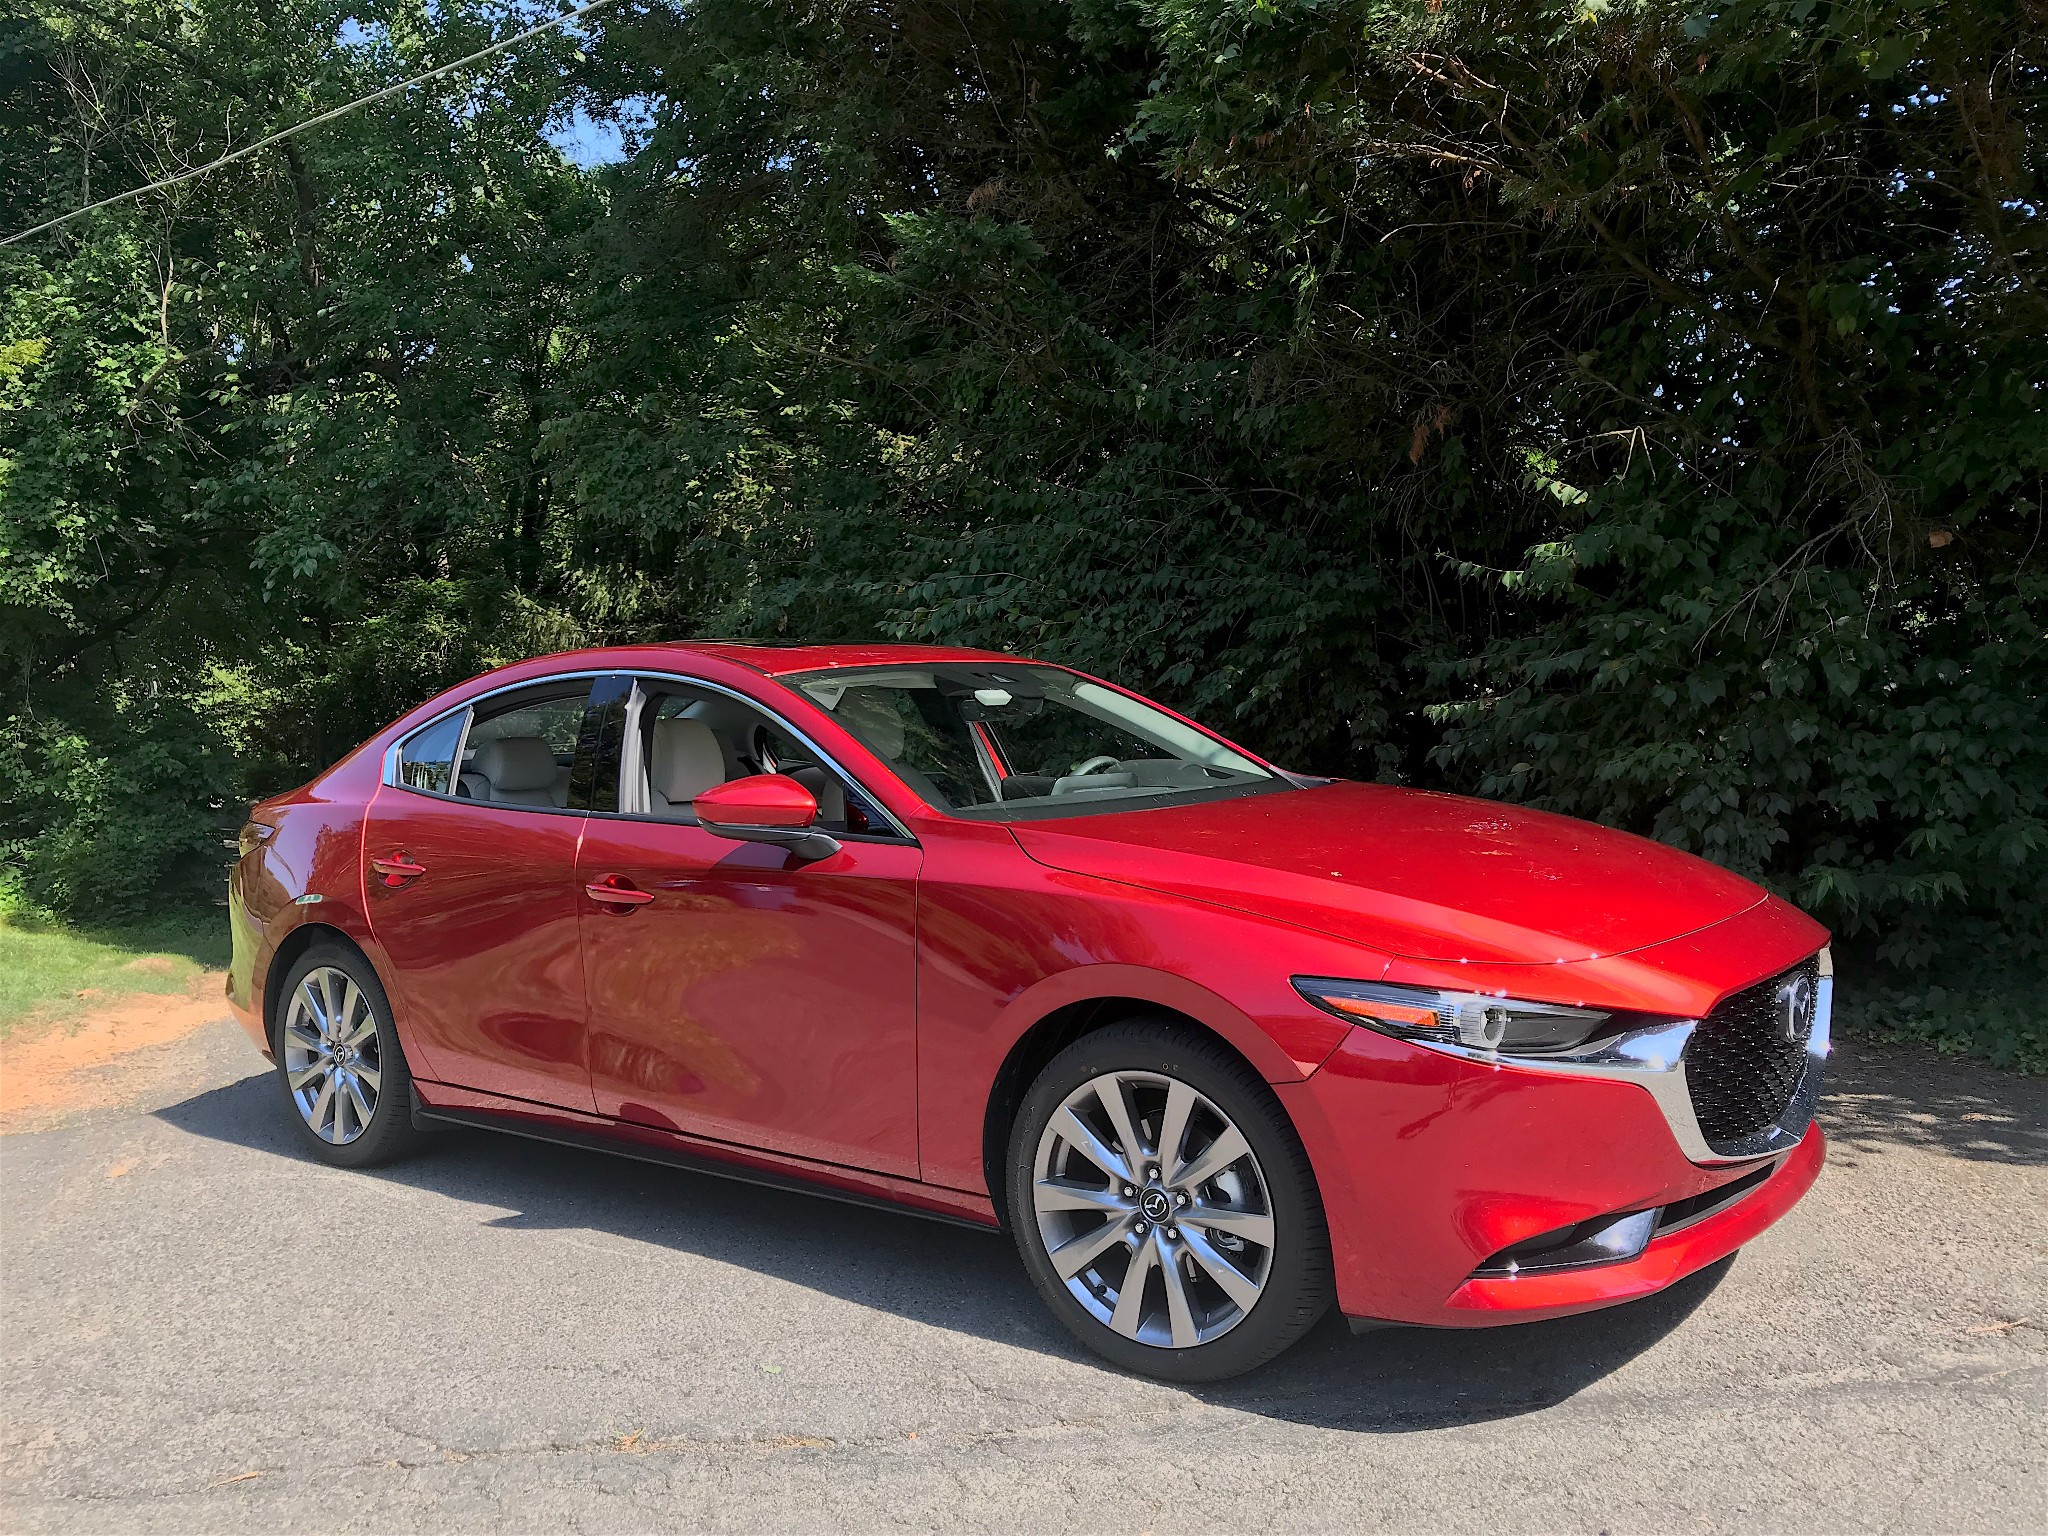 2019 Mazda3 10 Things We Like And 7 Not So Much News